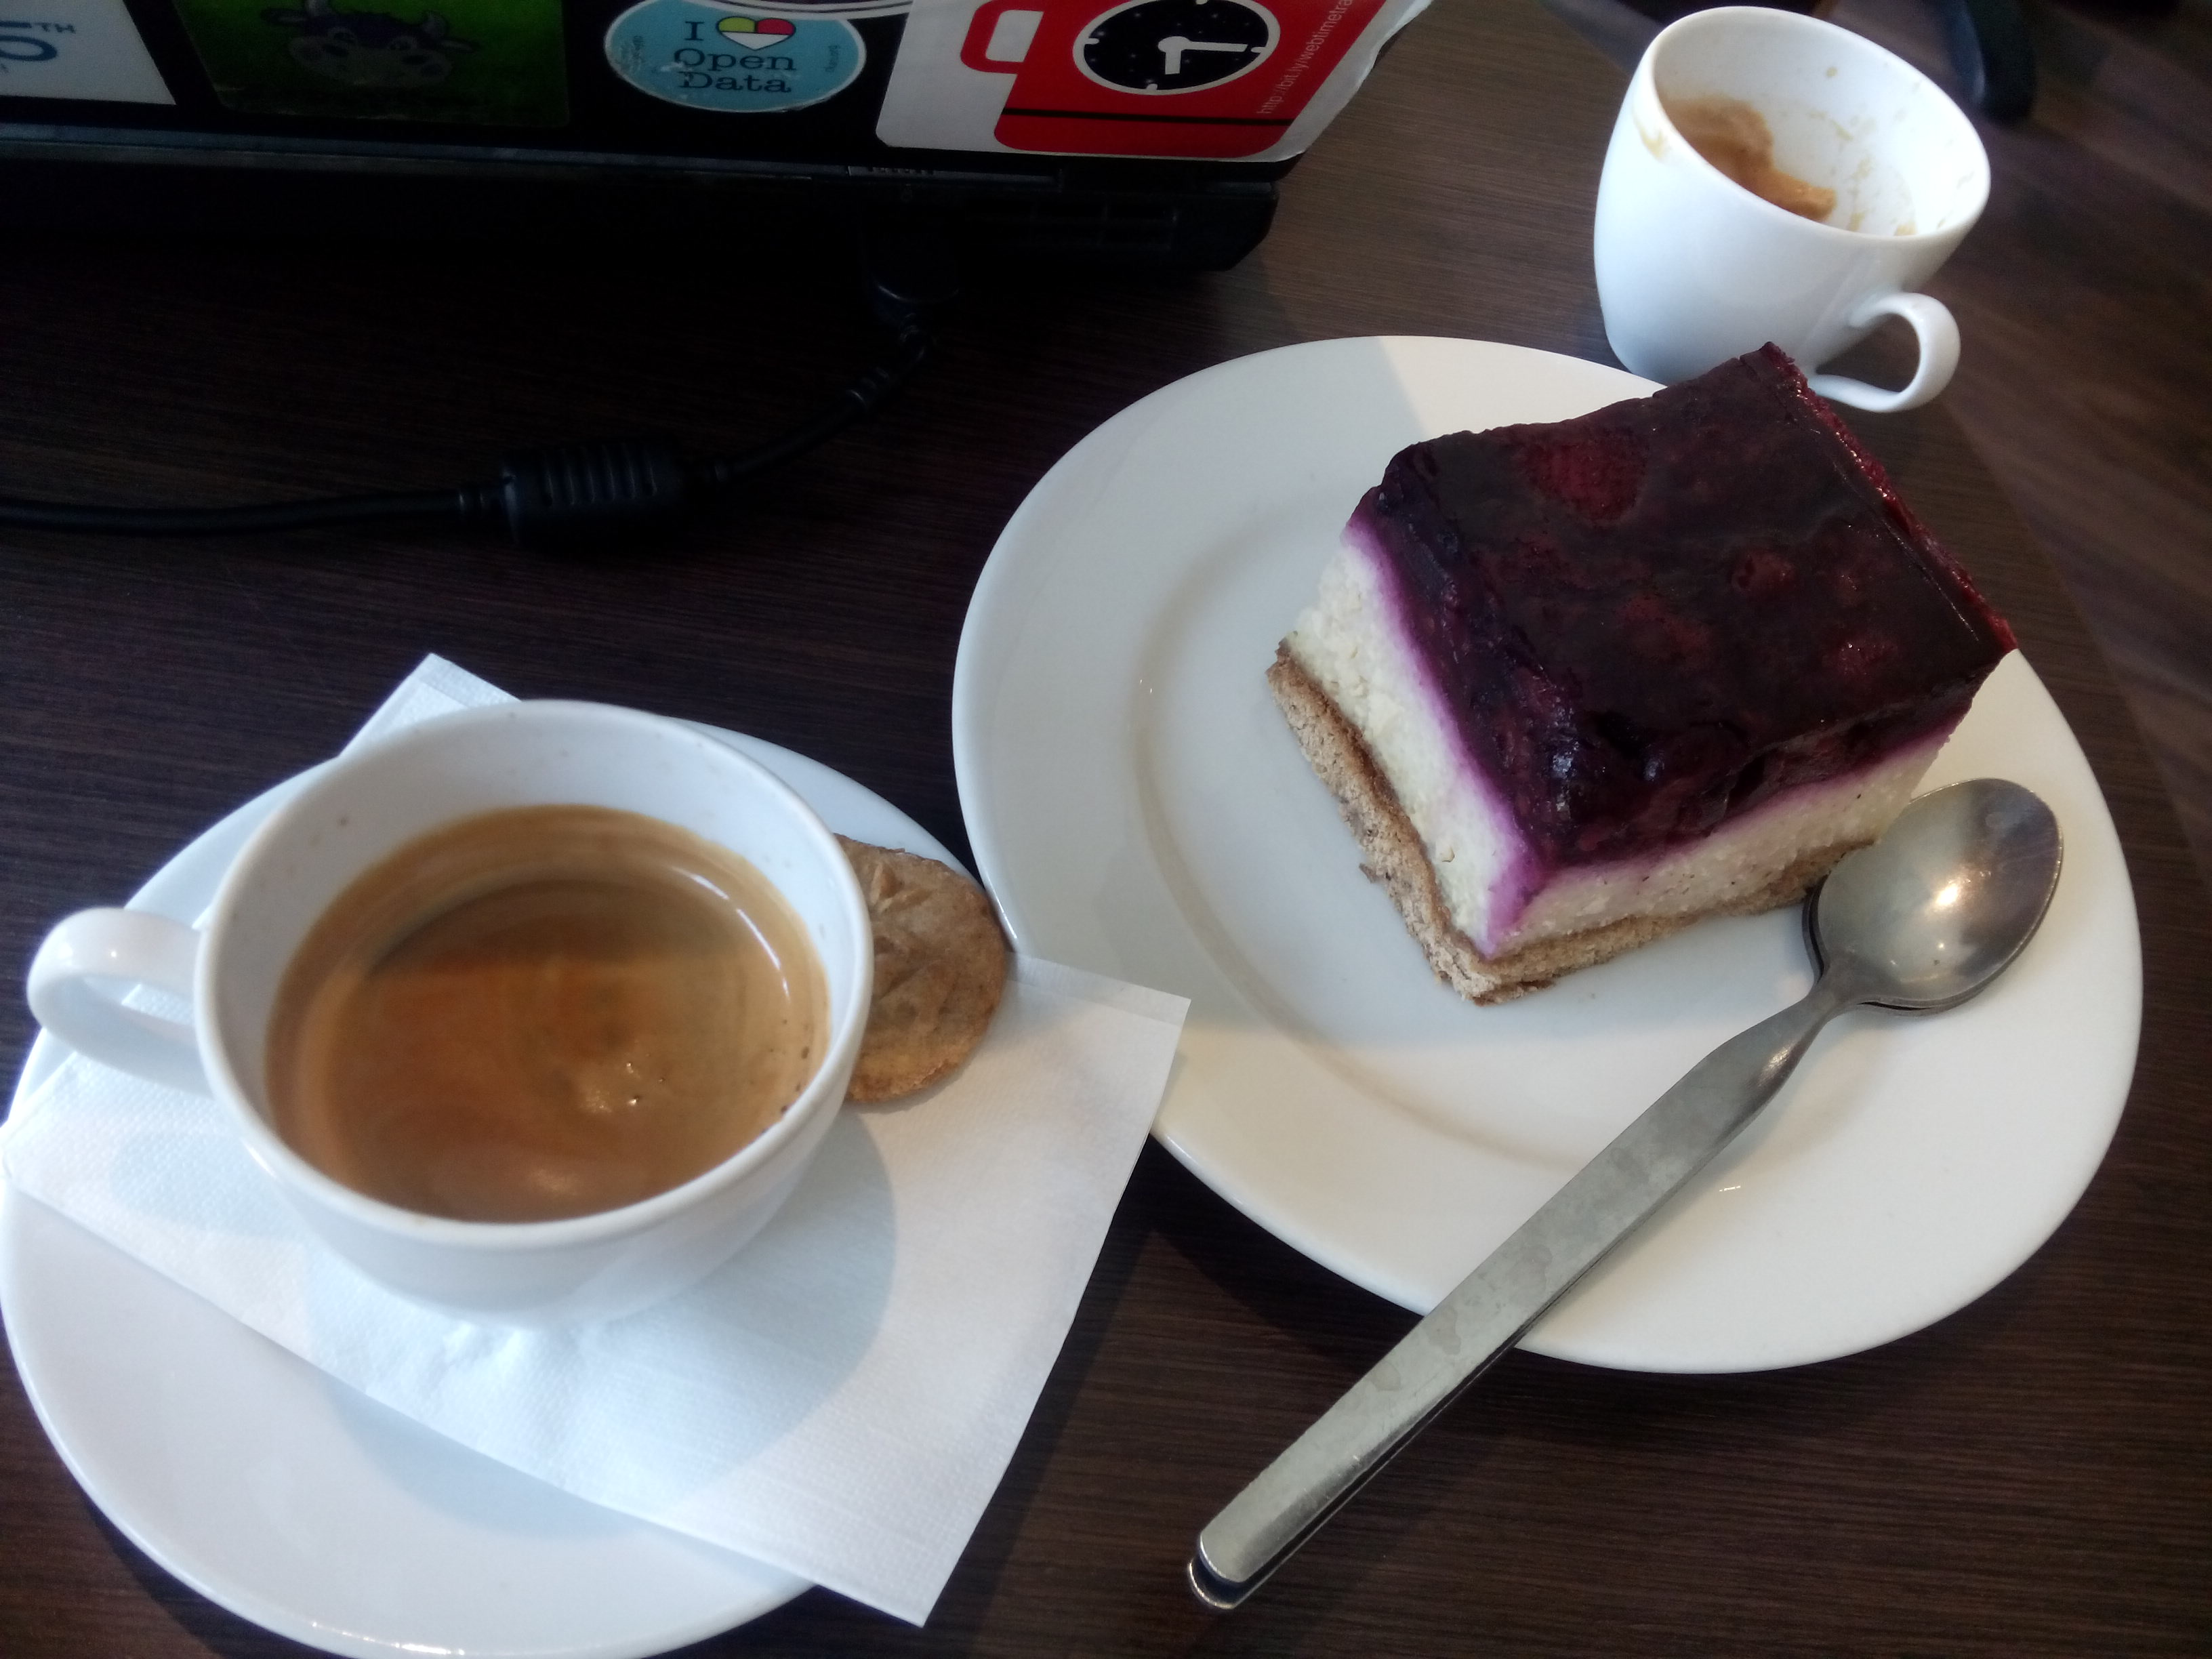 A cup of coffee next to a purple and white bouncy looking cake on a plate